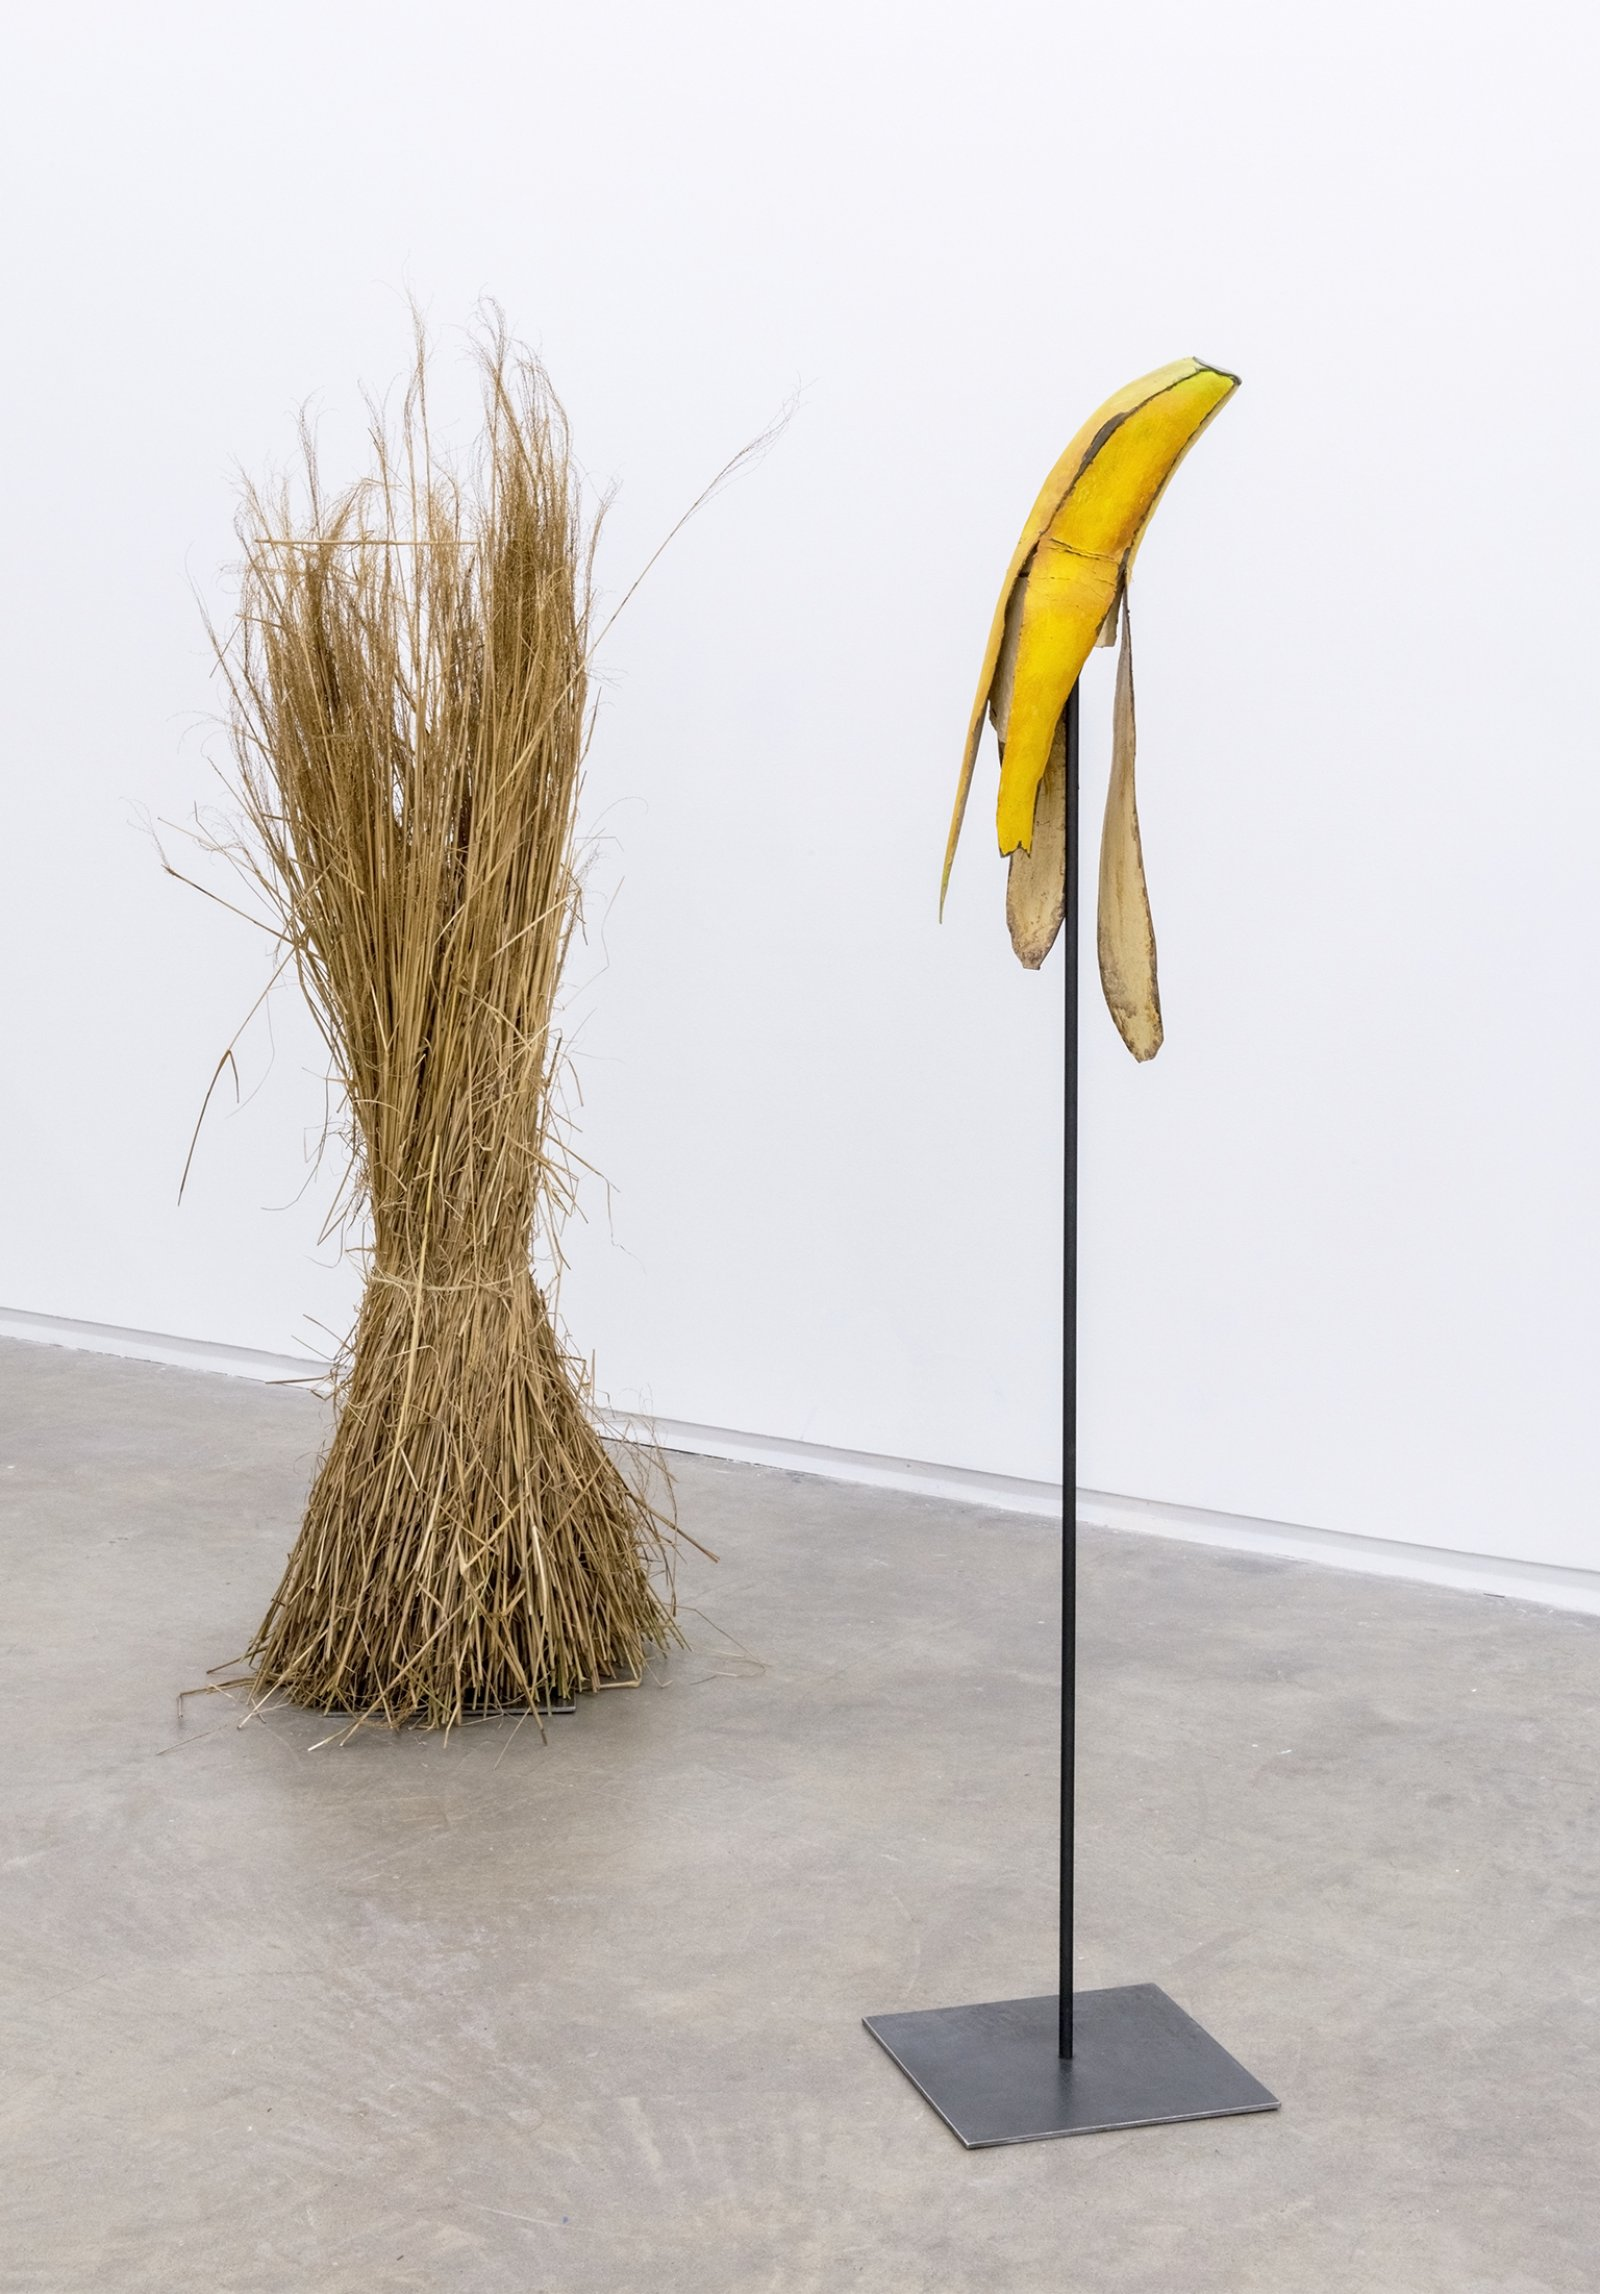 ​​Geoffrey Farmer, Banana and Grass, 2014, paint, foam, grass, metal stand, 2 wooden wall façades, window, sandbags, banana: 67 x 12 x 12 in. (170 x 31 x 31 cm), grass: 76 x 21 x 21 in. (193 x 54 x 54 cm)​​ by Geoffrey Farmer